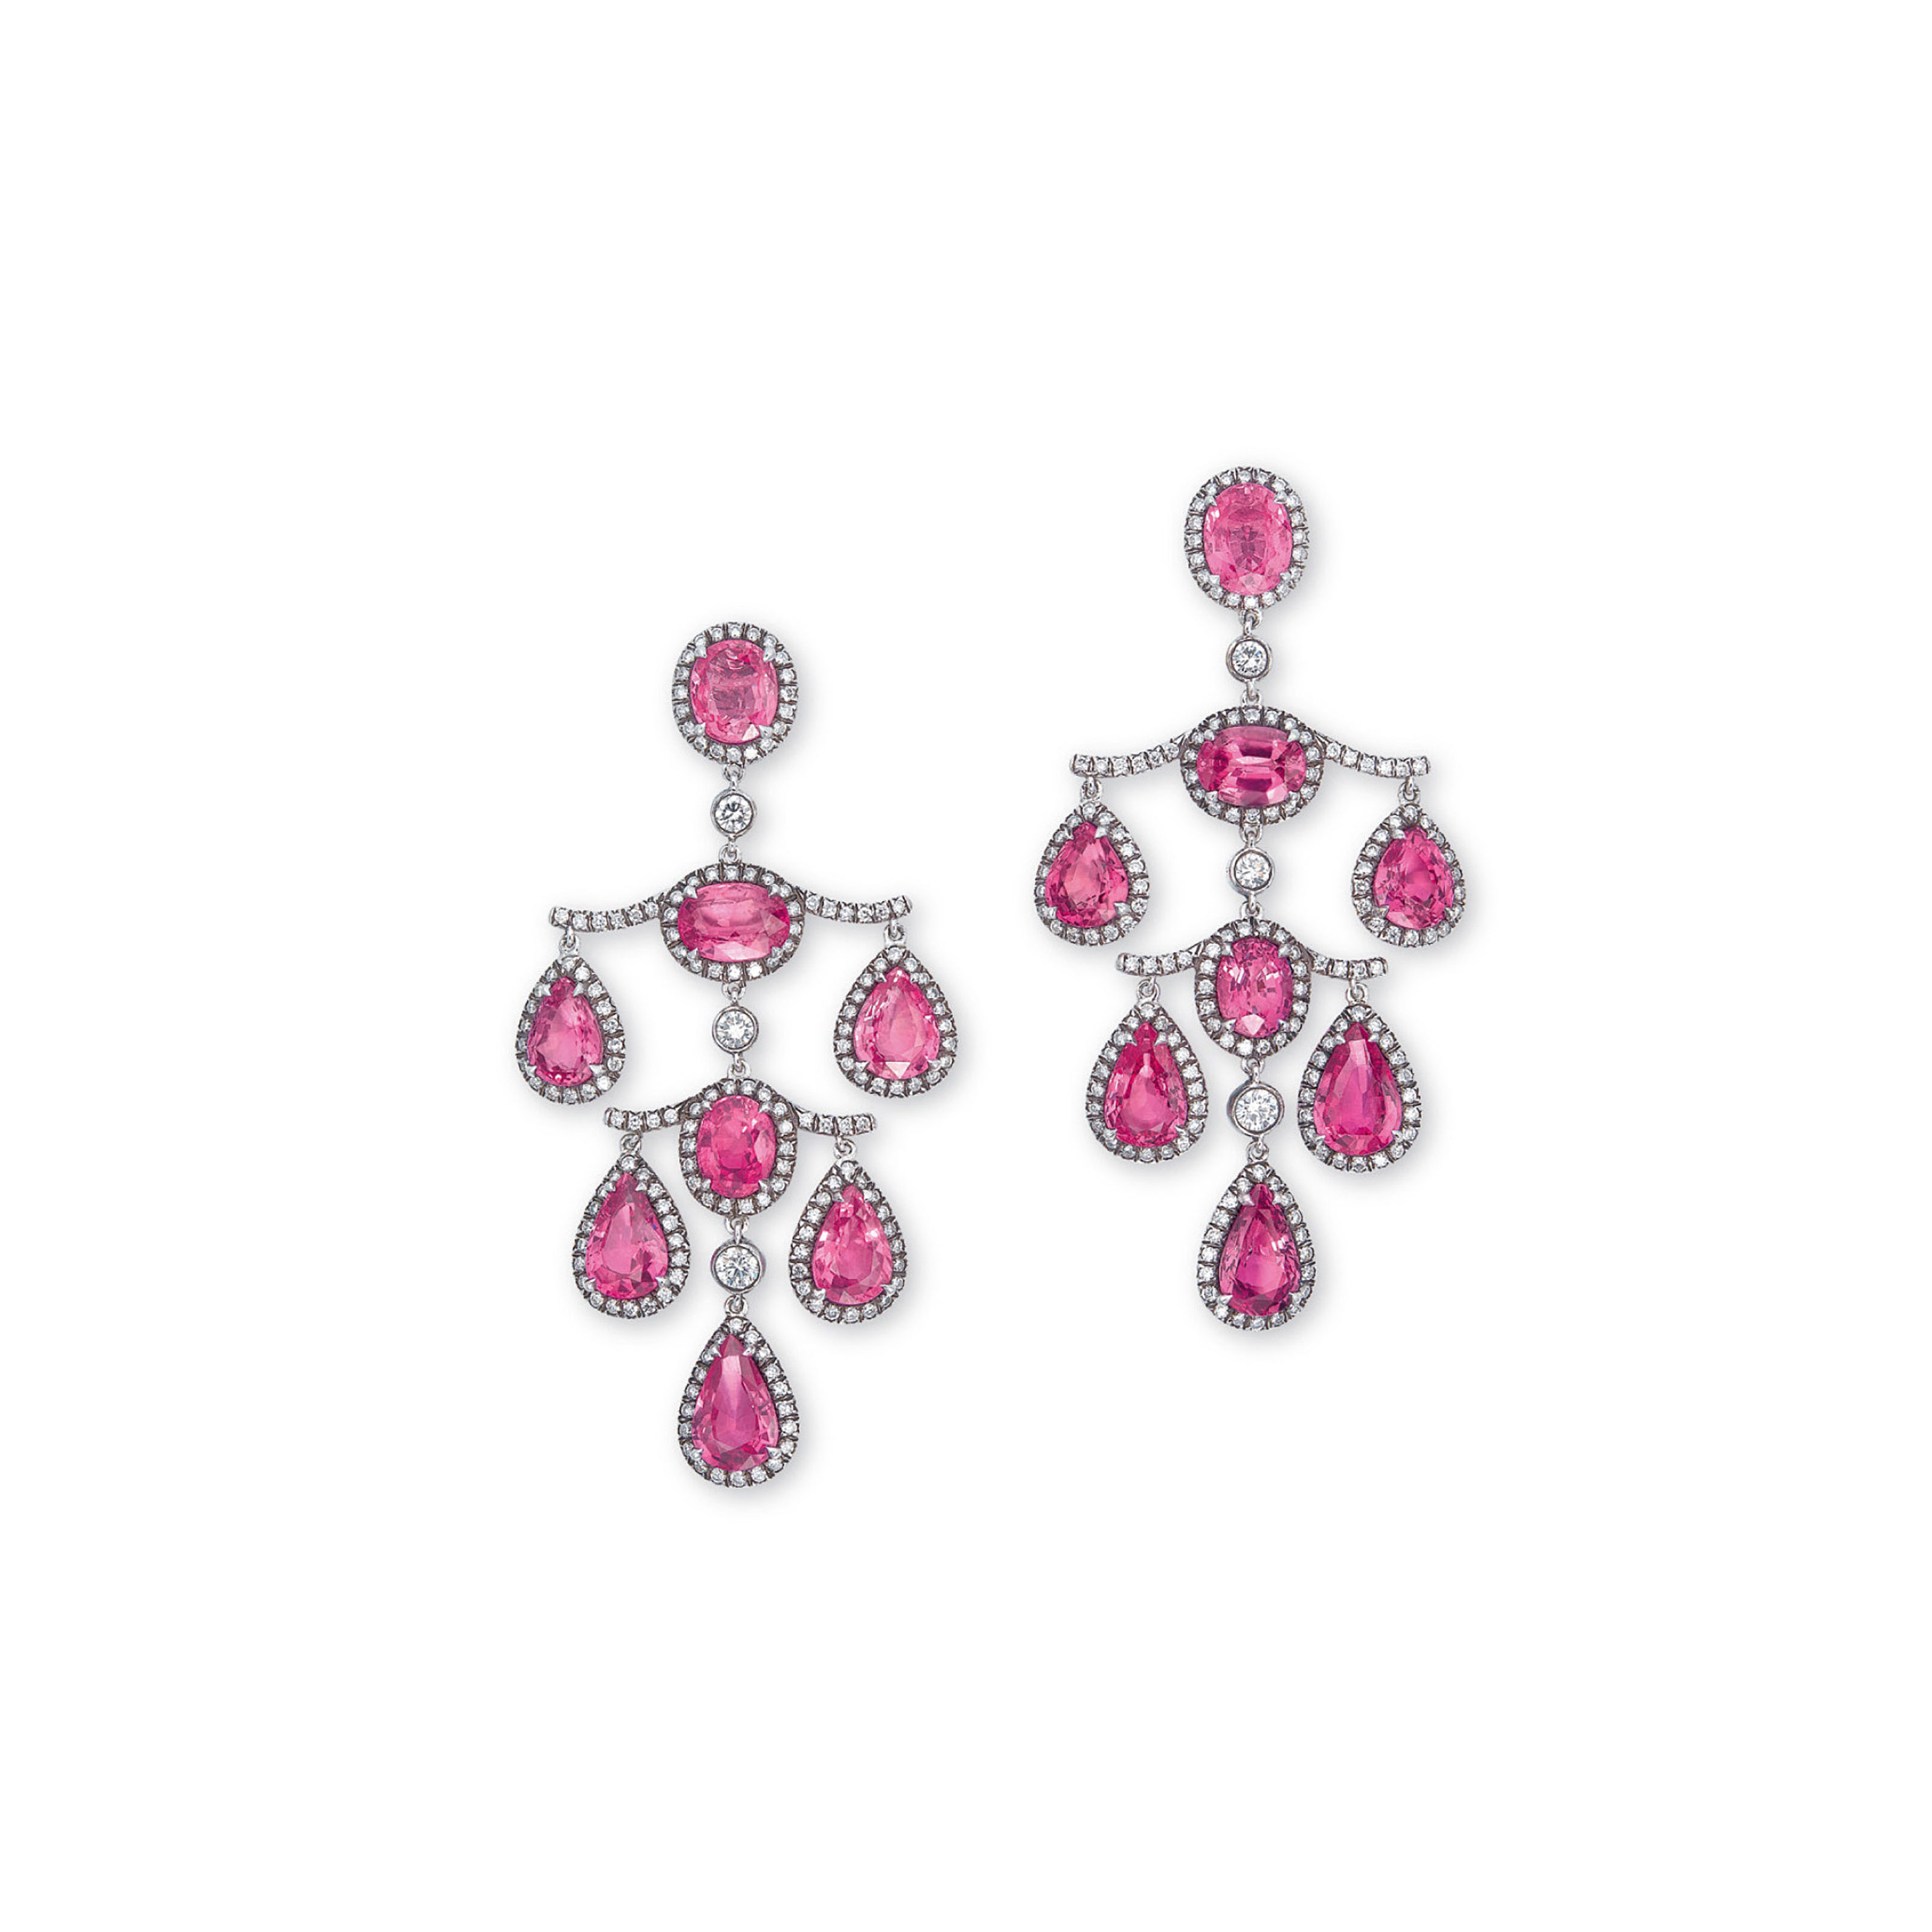 A PAIR OF PINK SAPPHIRE AND DIAMOND EAR PENDANTS, BY FRED LEIGHTON